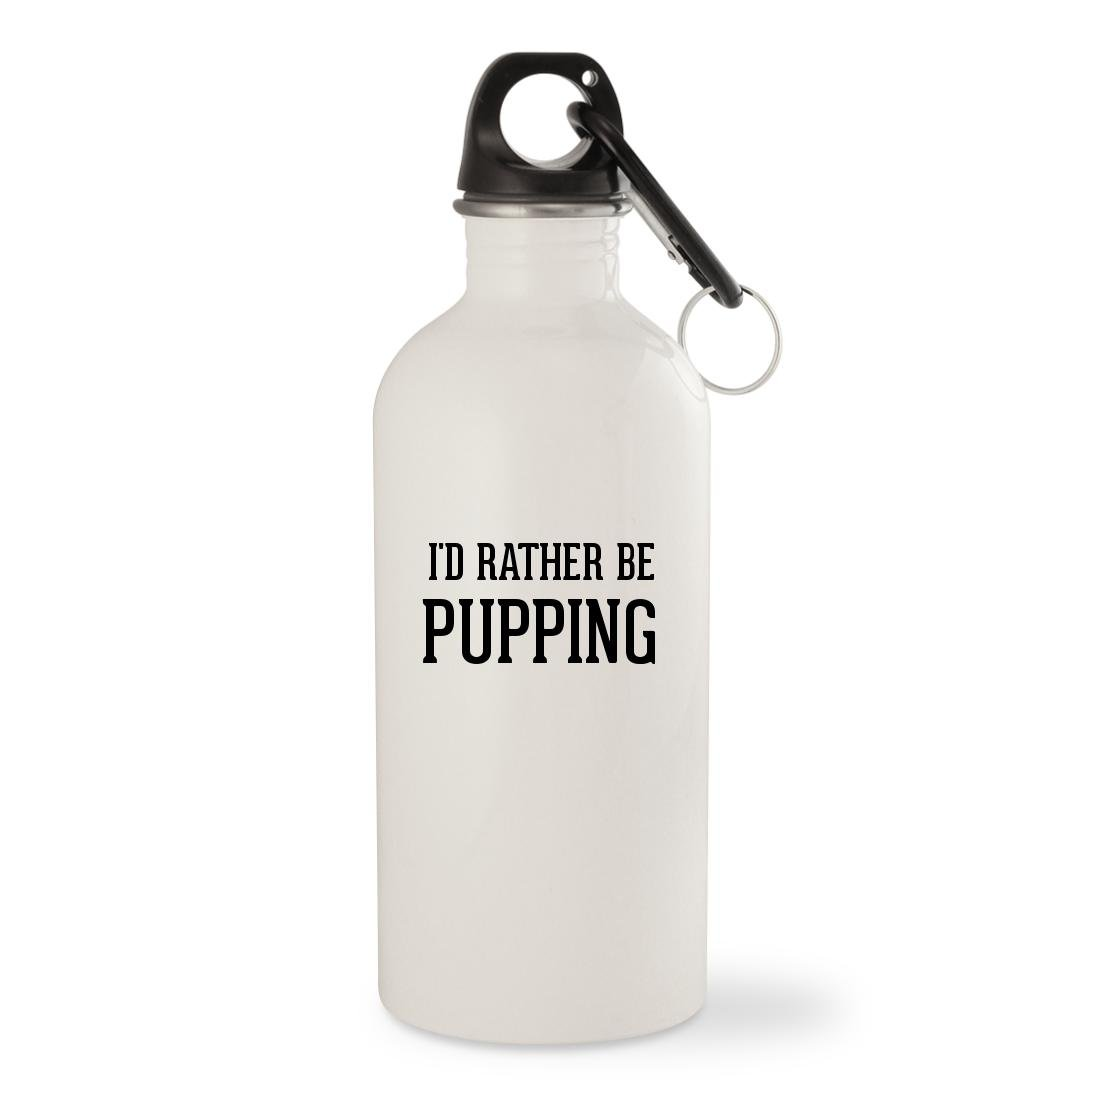 I'd Rather Be PUPPING - White 20oz Stainless Steel Water Bottle with Carabiner